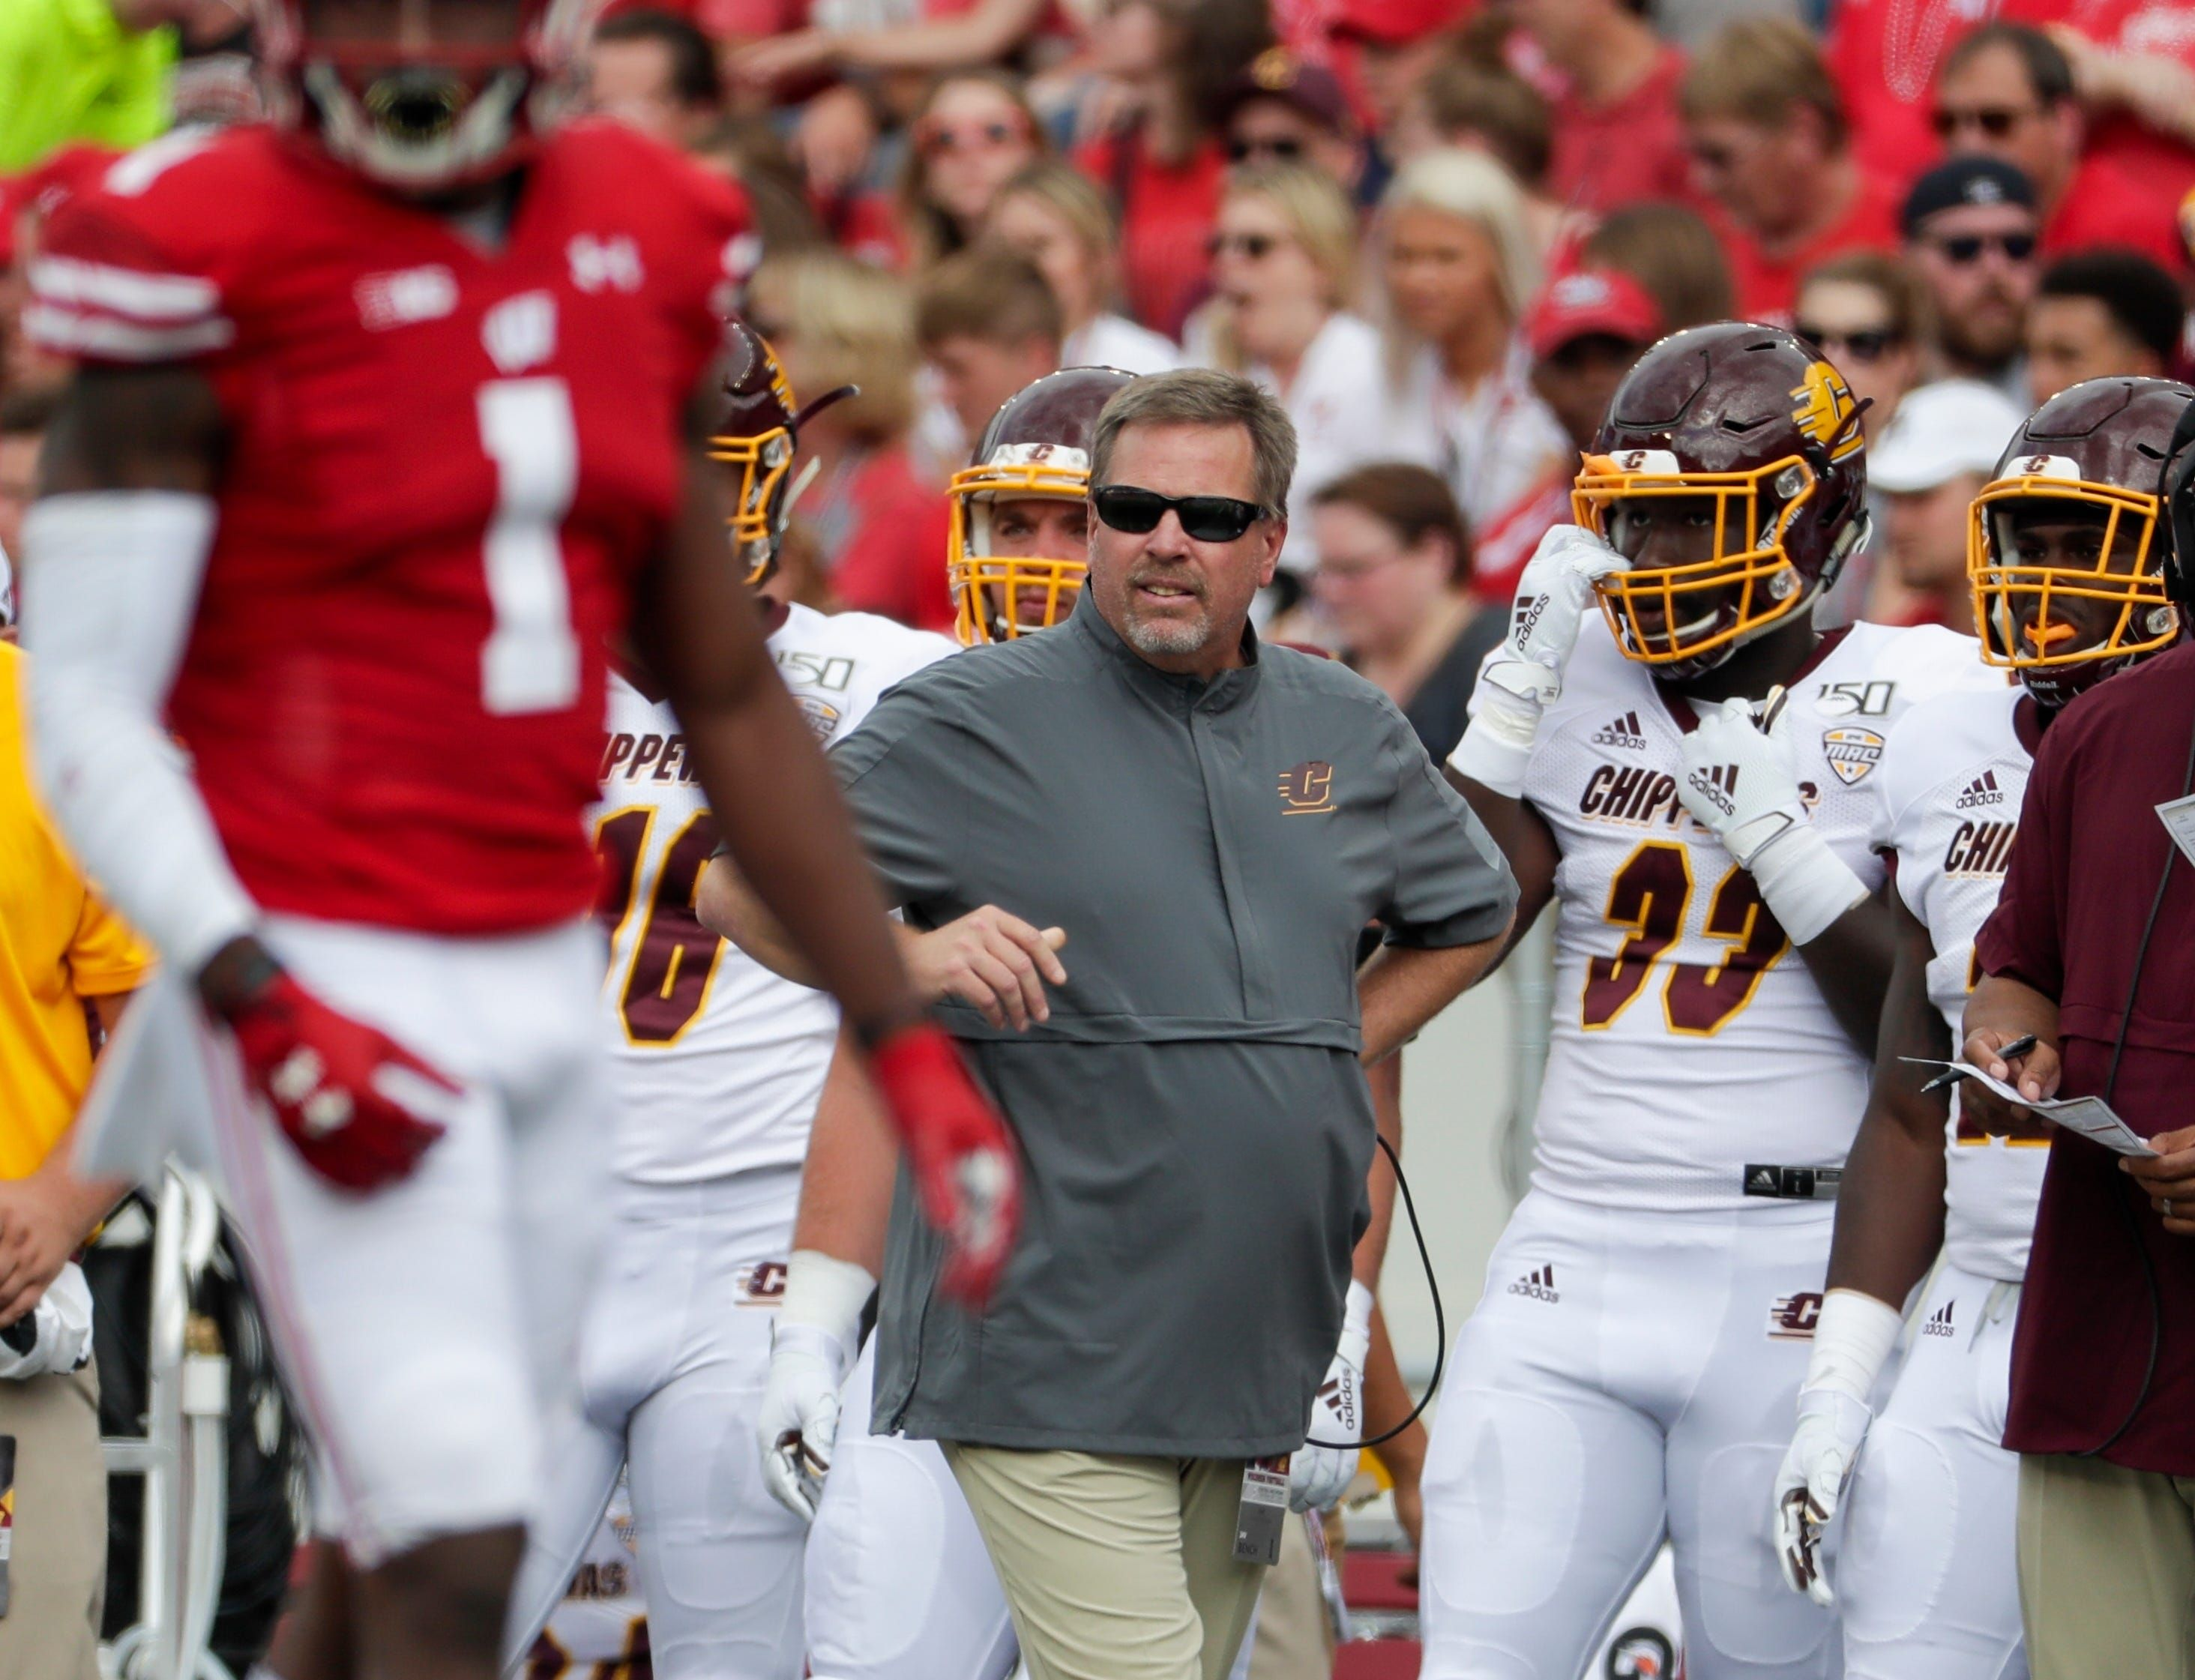 Central Michigan's Jim McElwain is subject of Power 5